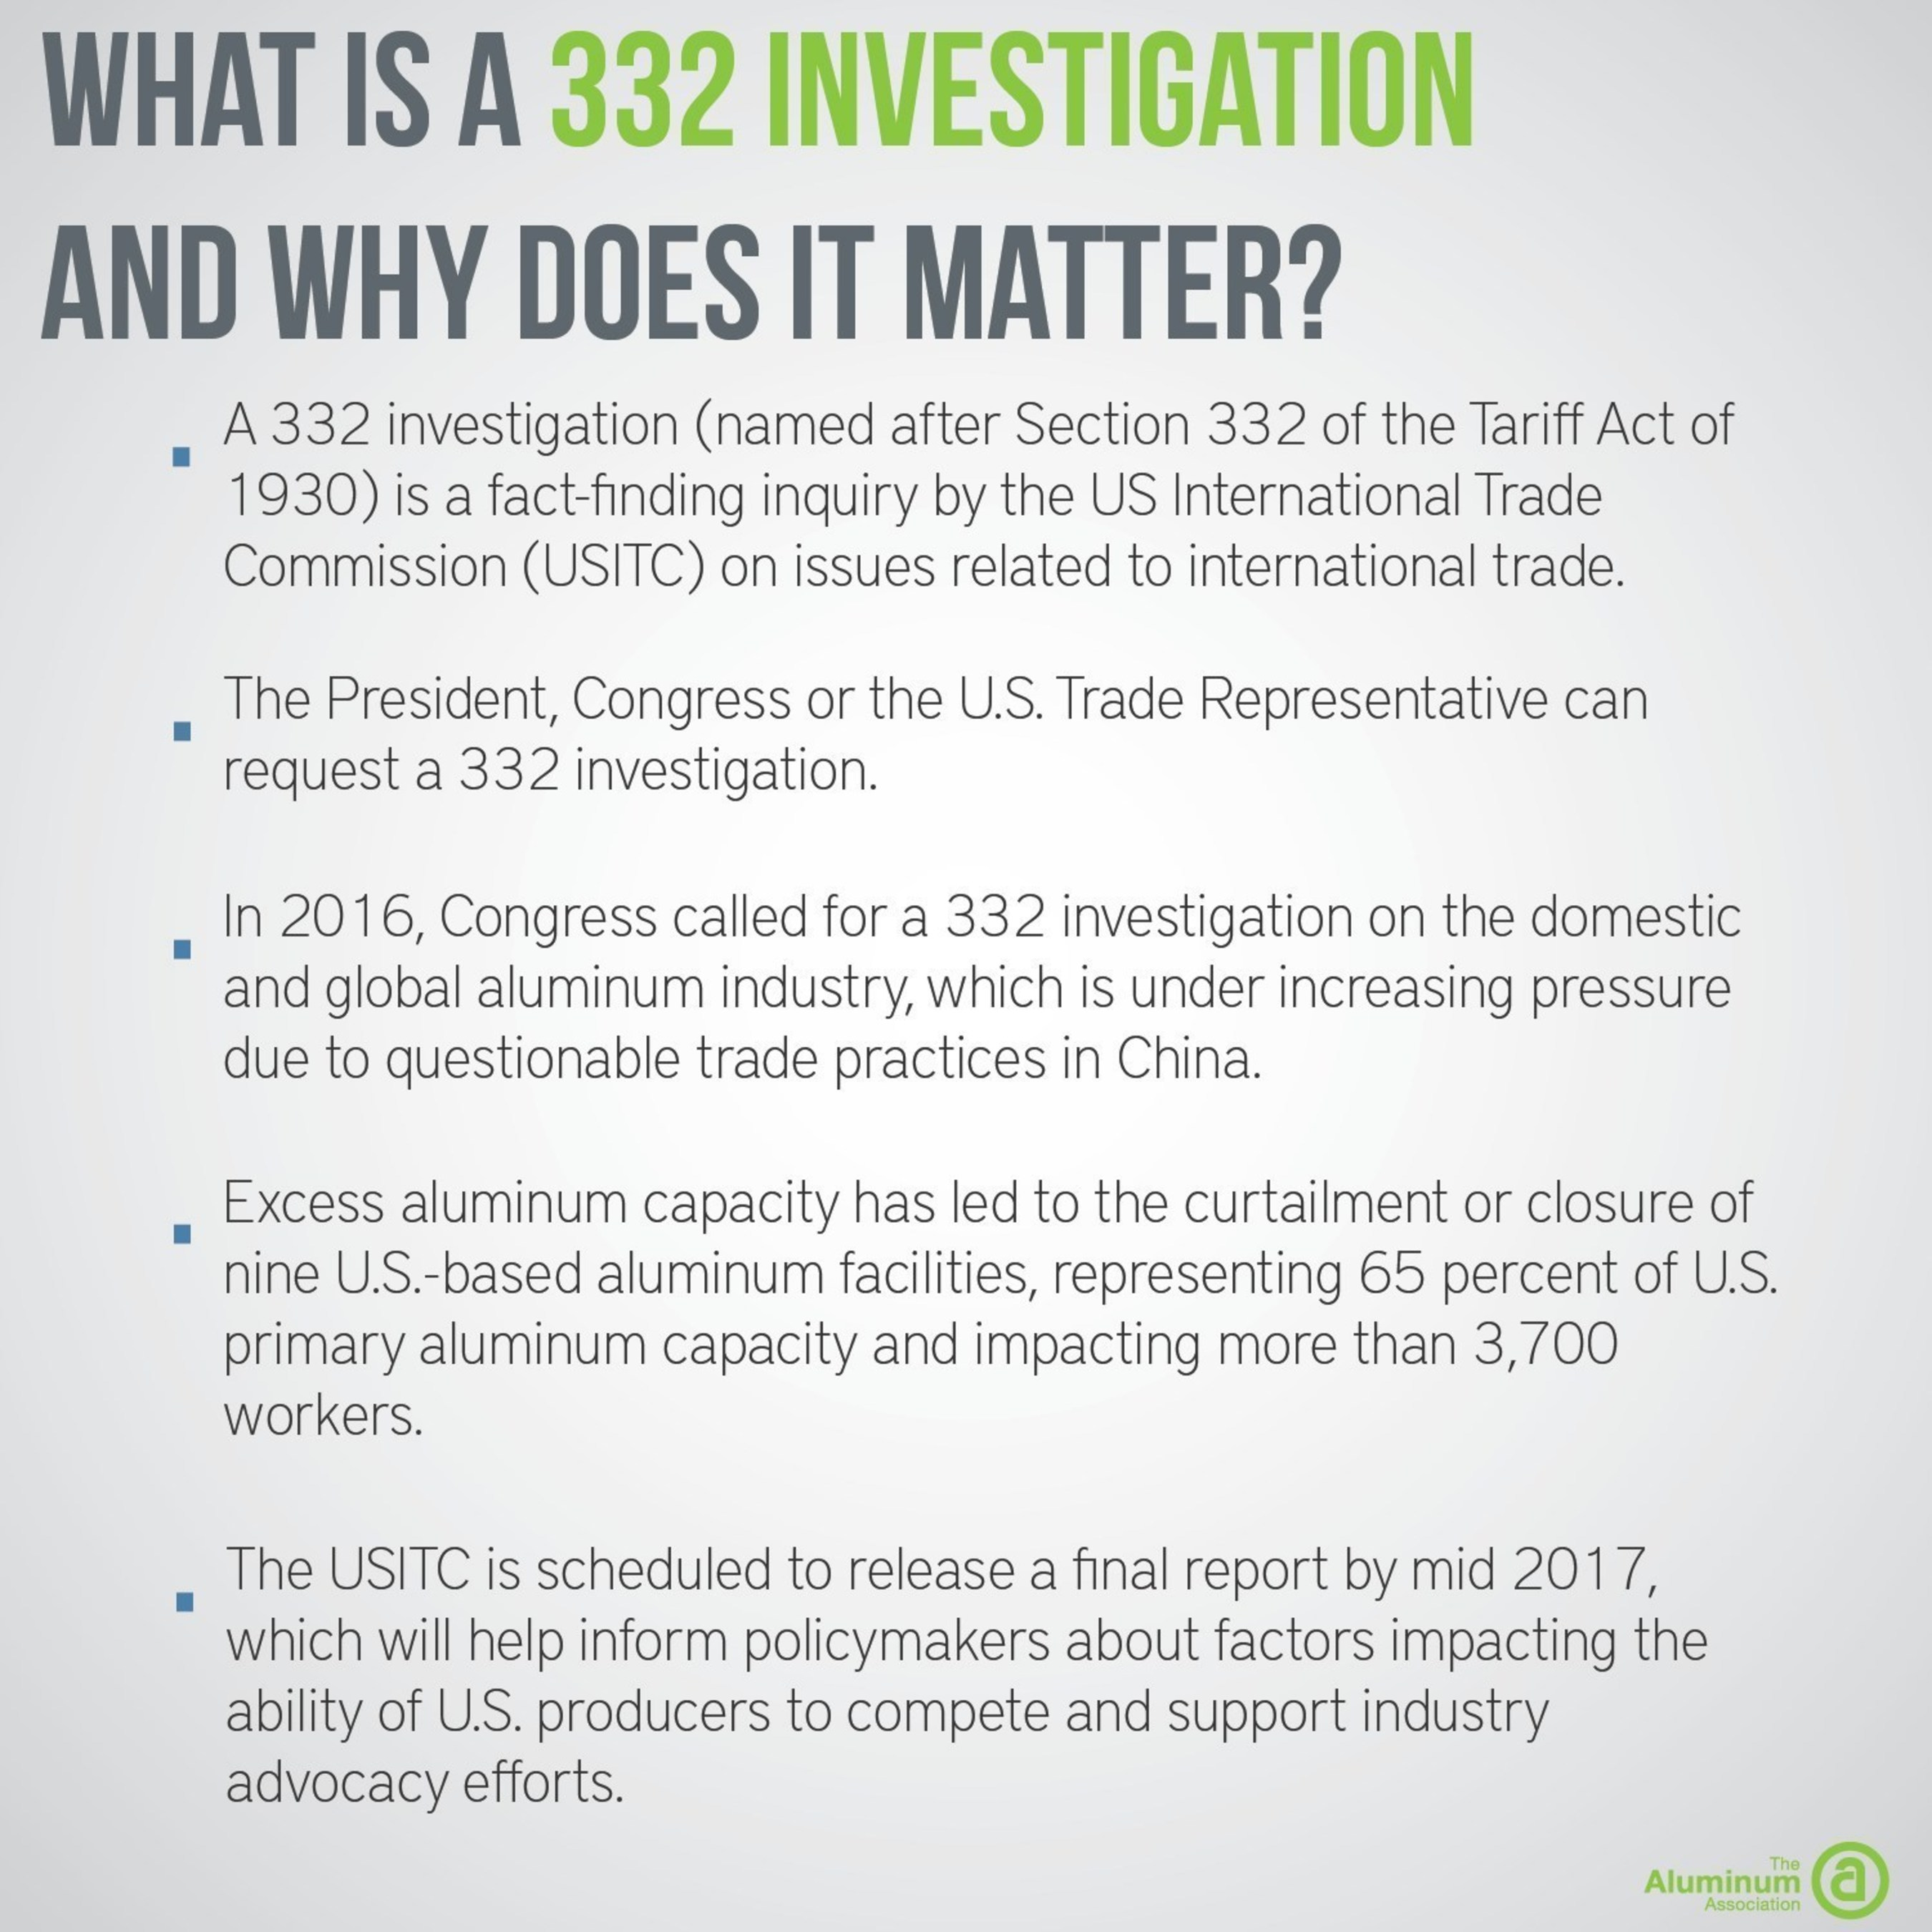 The House Ways & Means Committee has called for an investigation into factors impacting the global ...